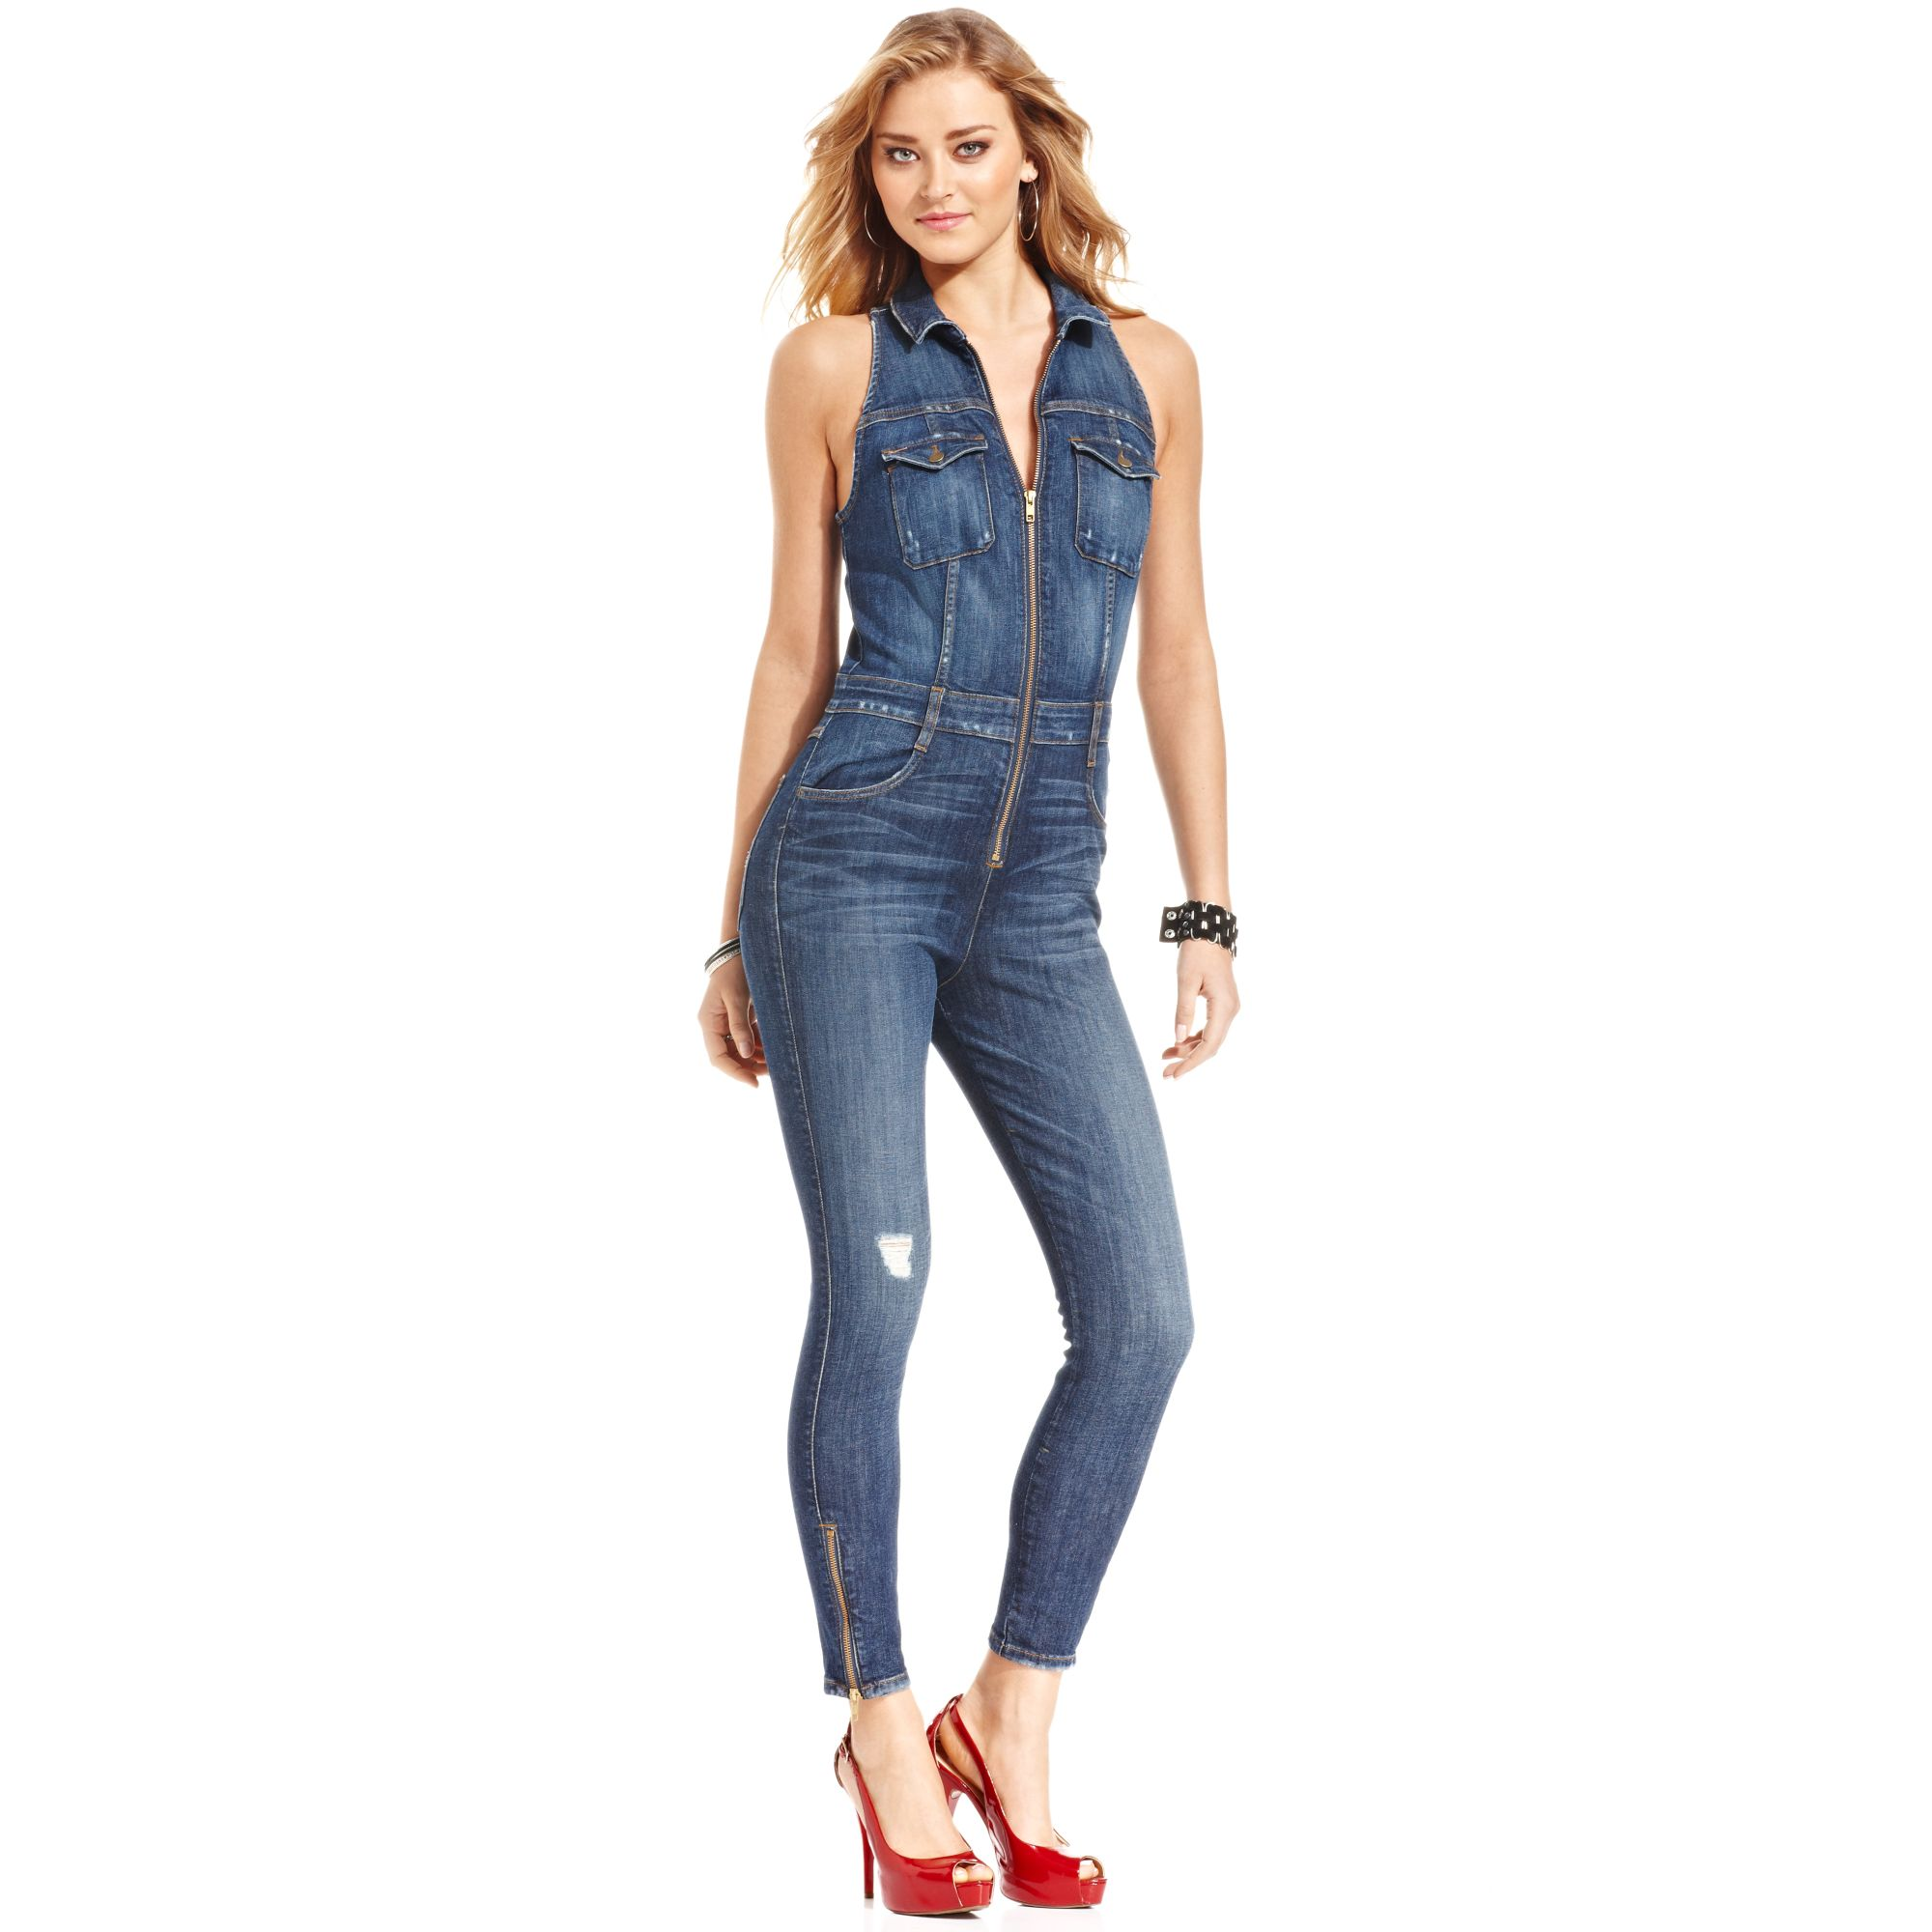 DUNGAREES - Jumpsuits Guess Pick A Best For Sale Cheap Sale Outlet Store Extremely Online Inexpensive Cheap Online V9EnMbdhzQ